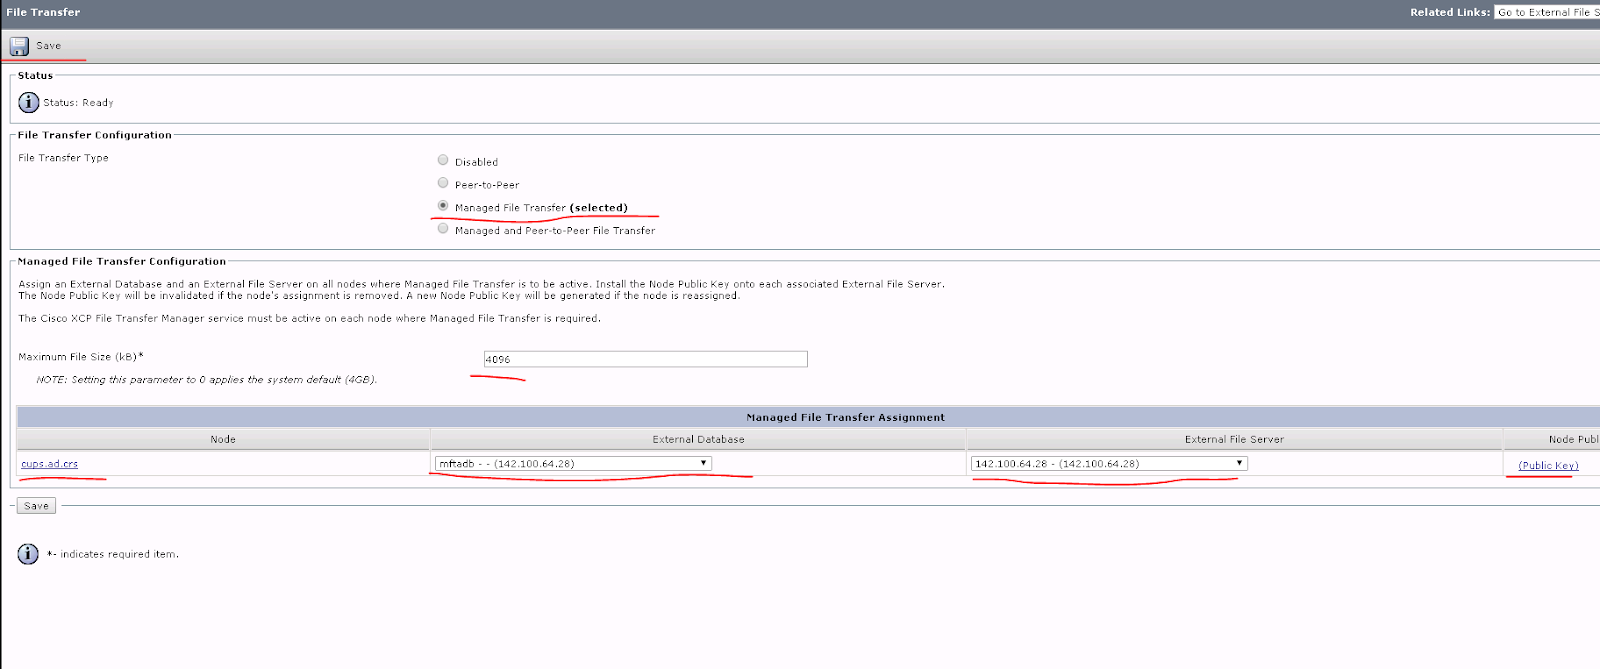 UC Valley: Jabber Persistent Chat and Managed File Transfer